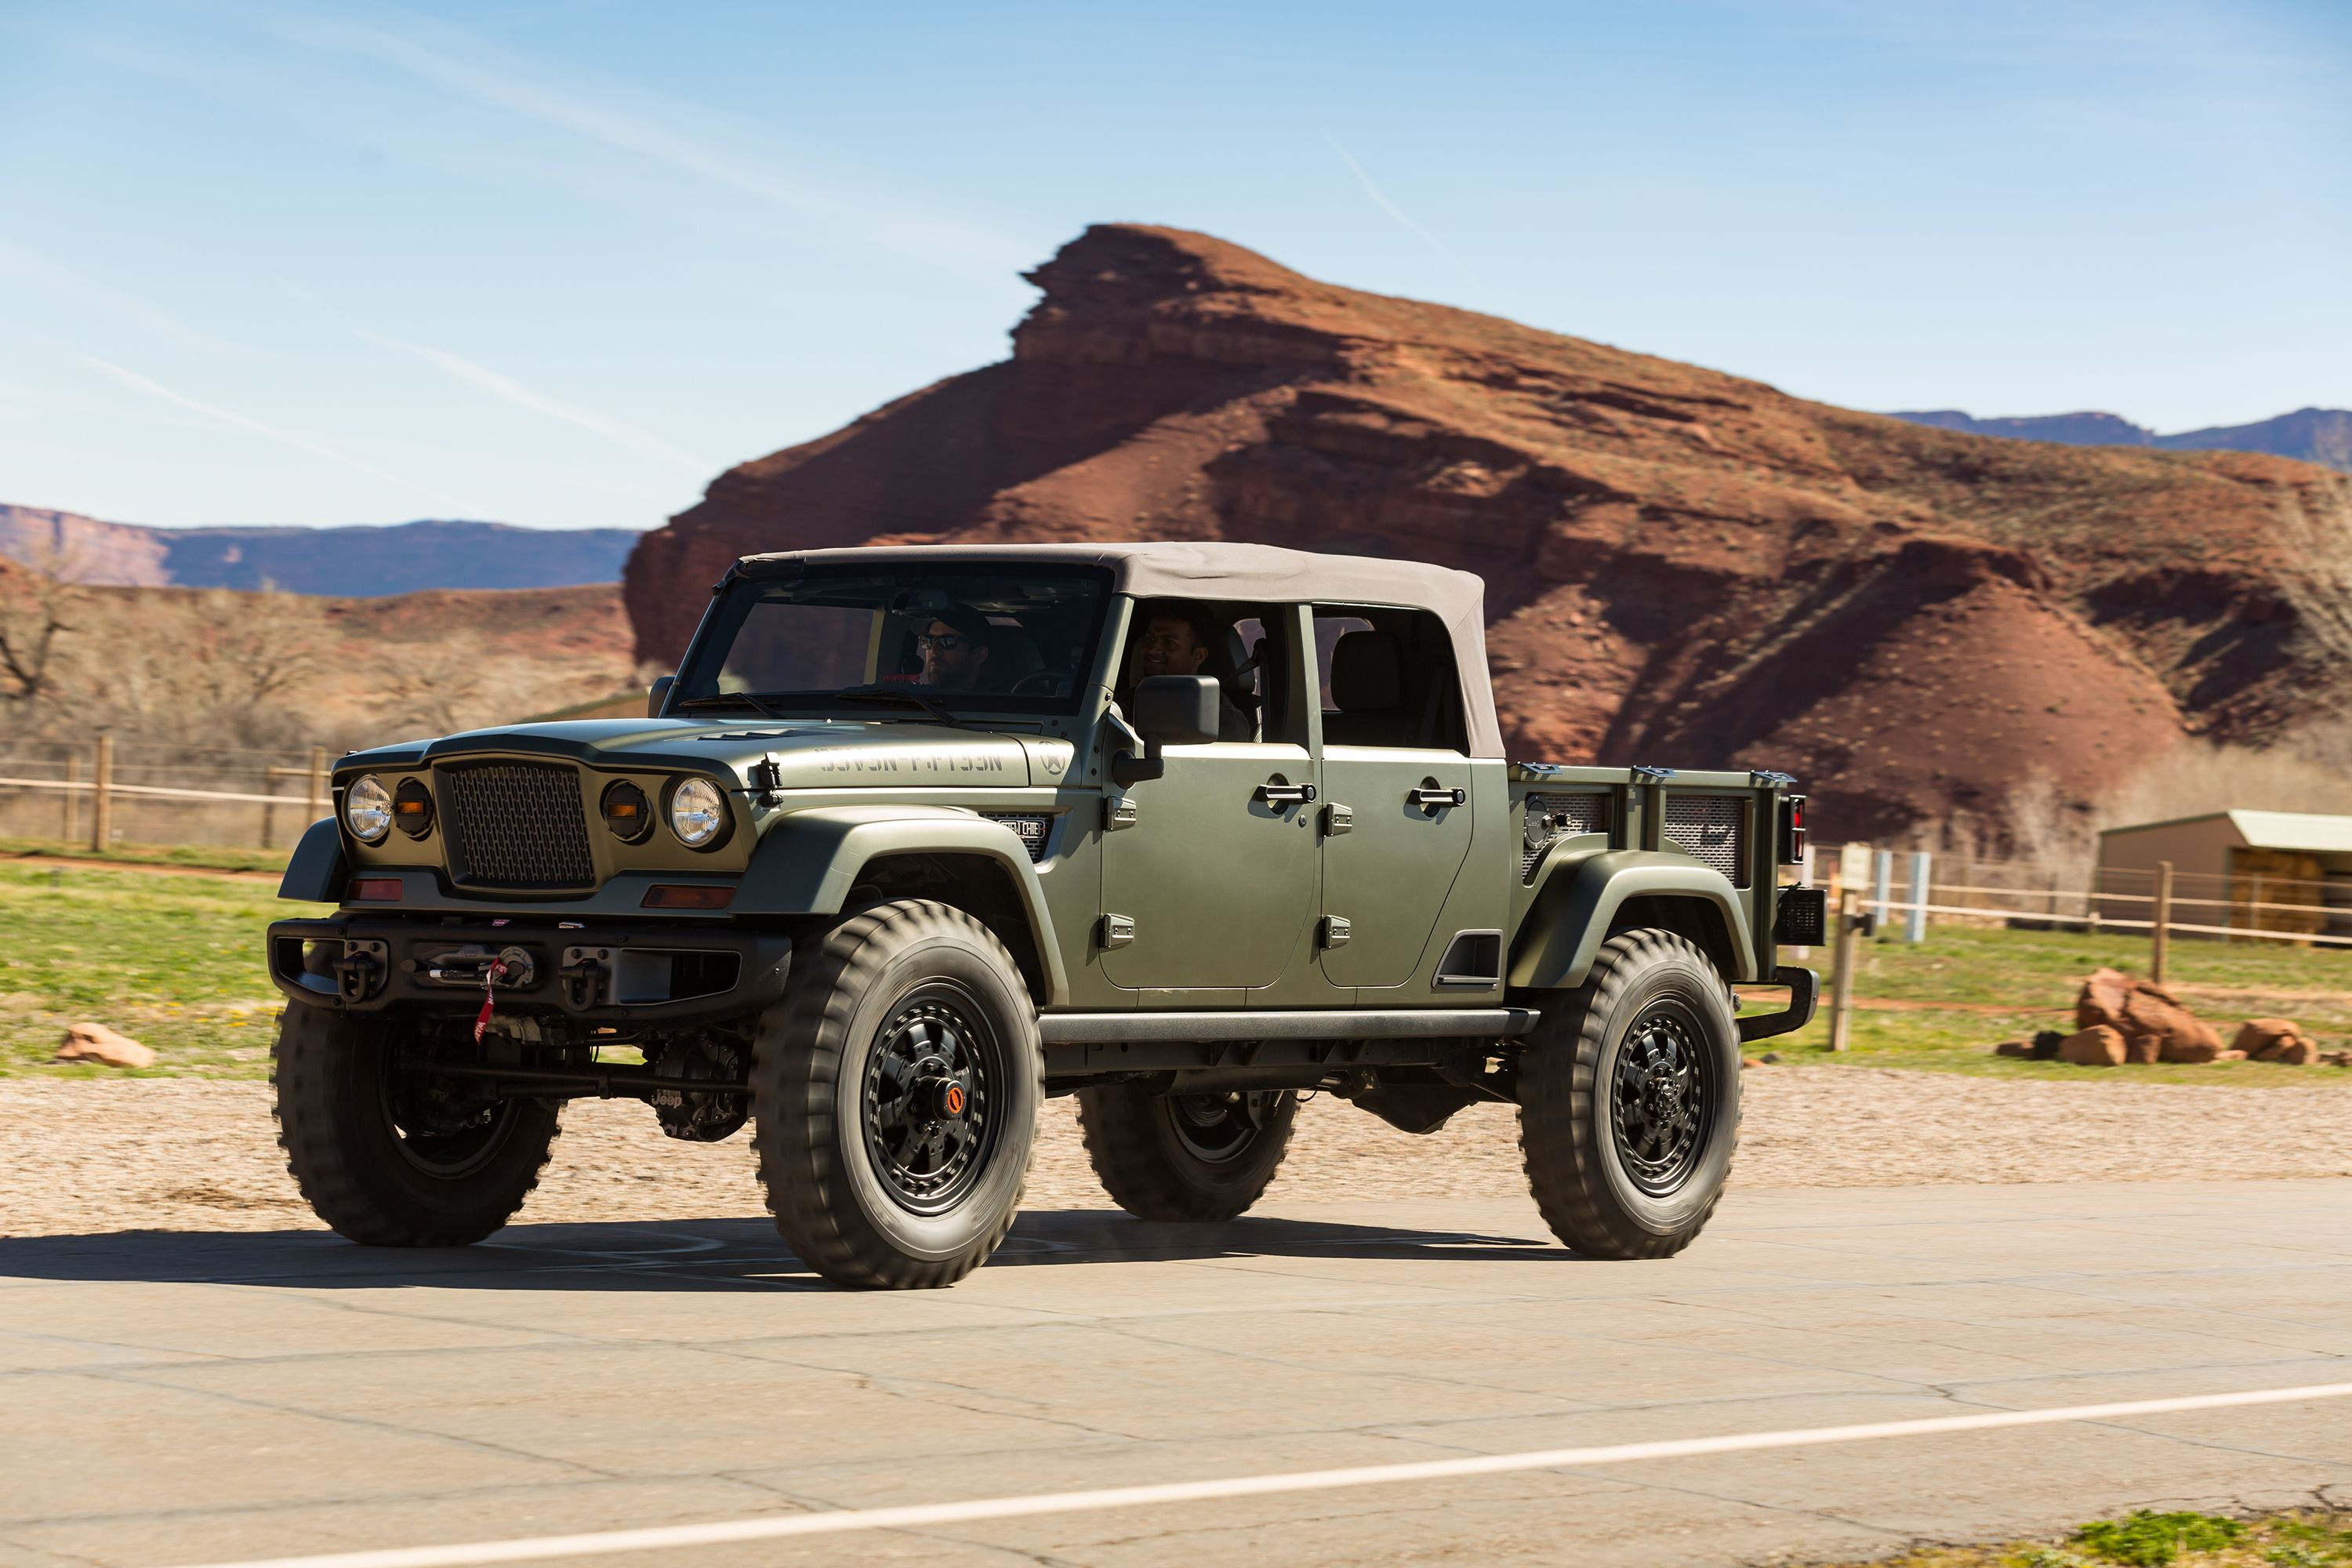 jeep crew chief 715 concept jk 39 off road car pinterest jeep offroad and cars. Black Bedroom Furniture Sets. Home Design Ideas